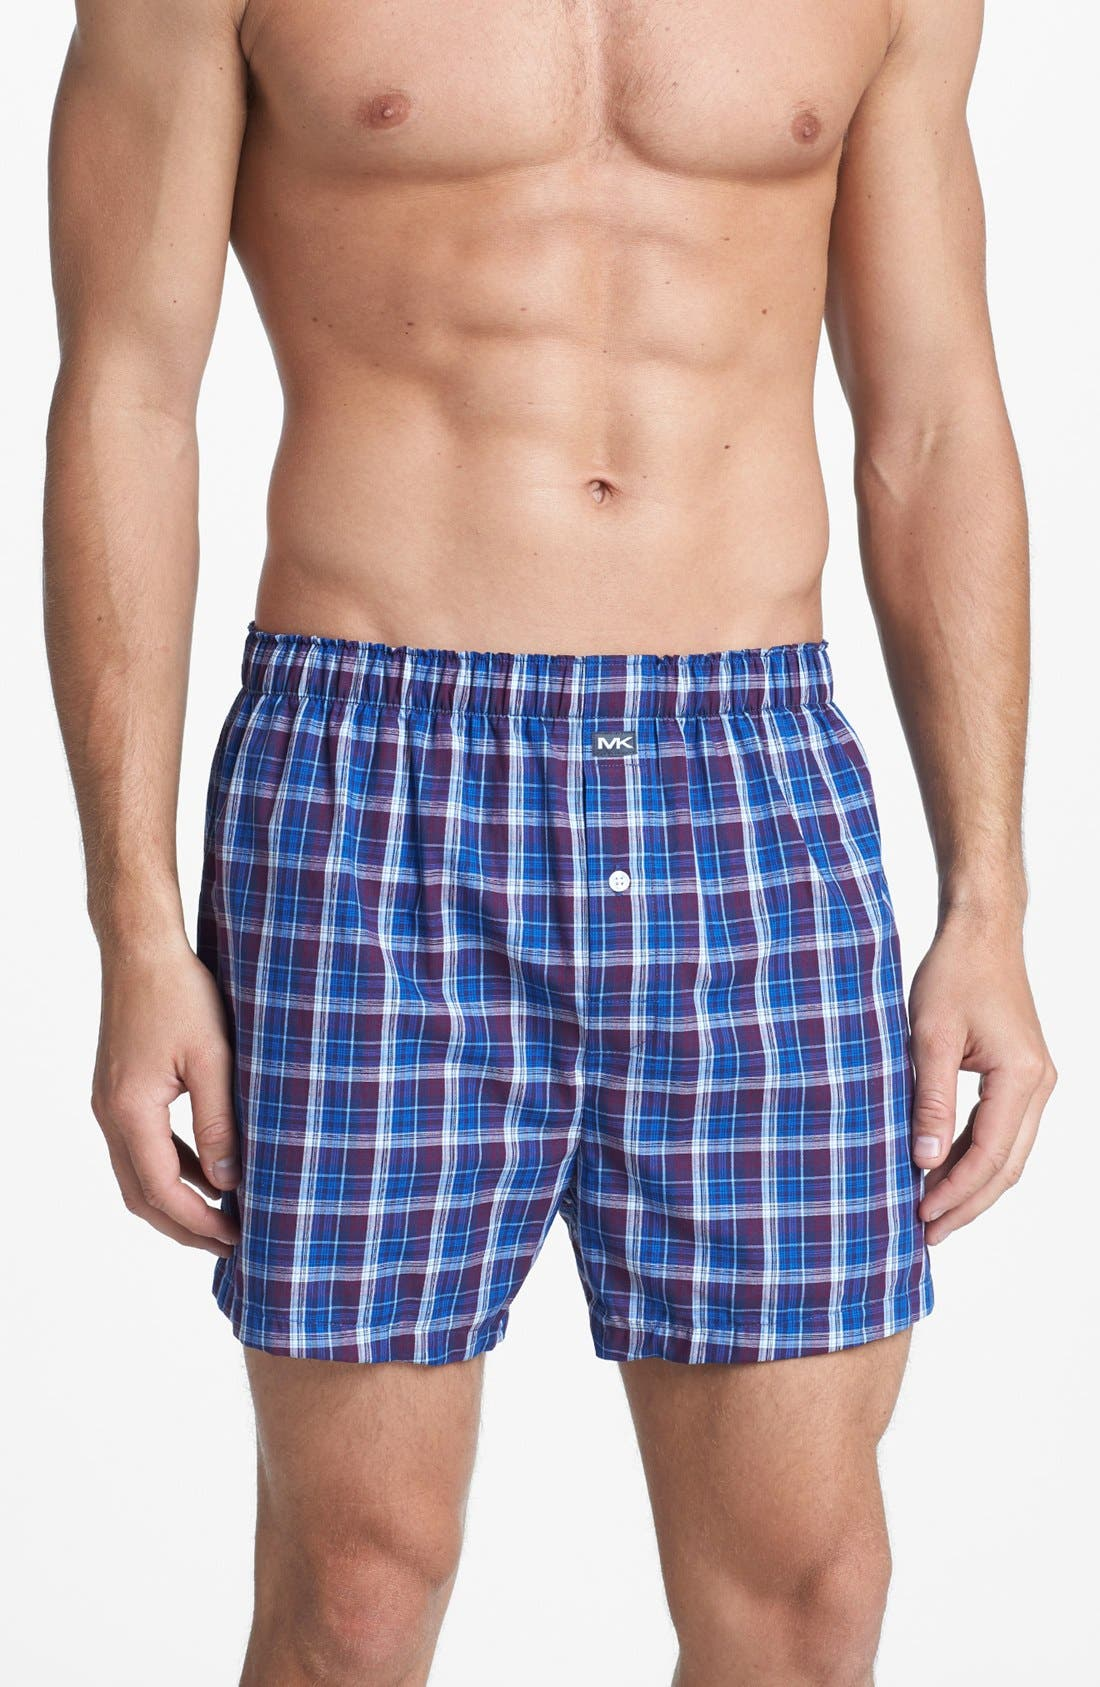 Main Image - Michael Kors Woven Boxers (Assorted 2-Pack)